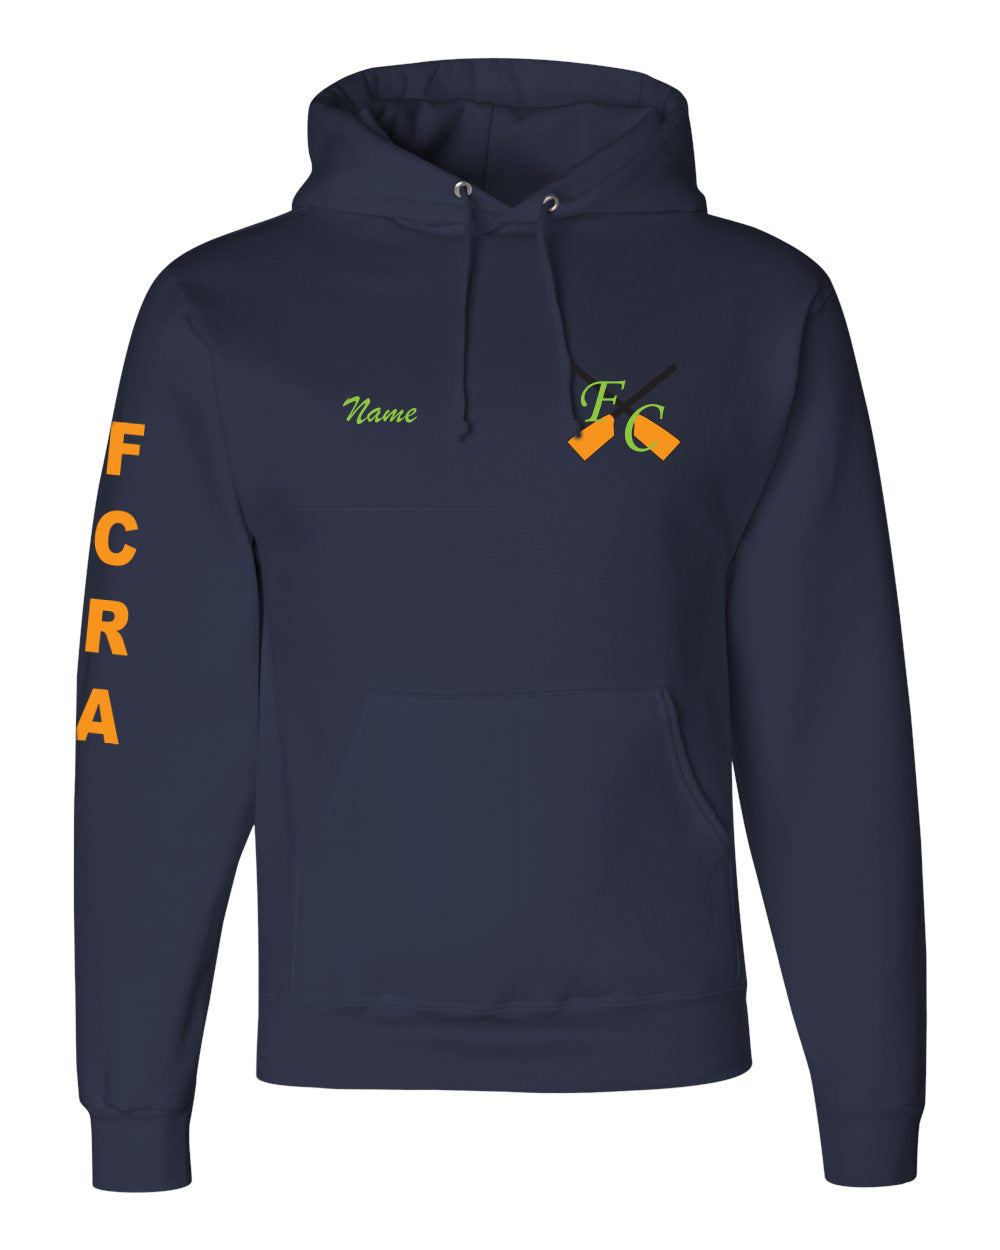 50/50 Hooded FCRA Pullover Sweatshirt